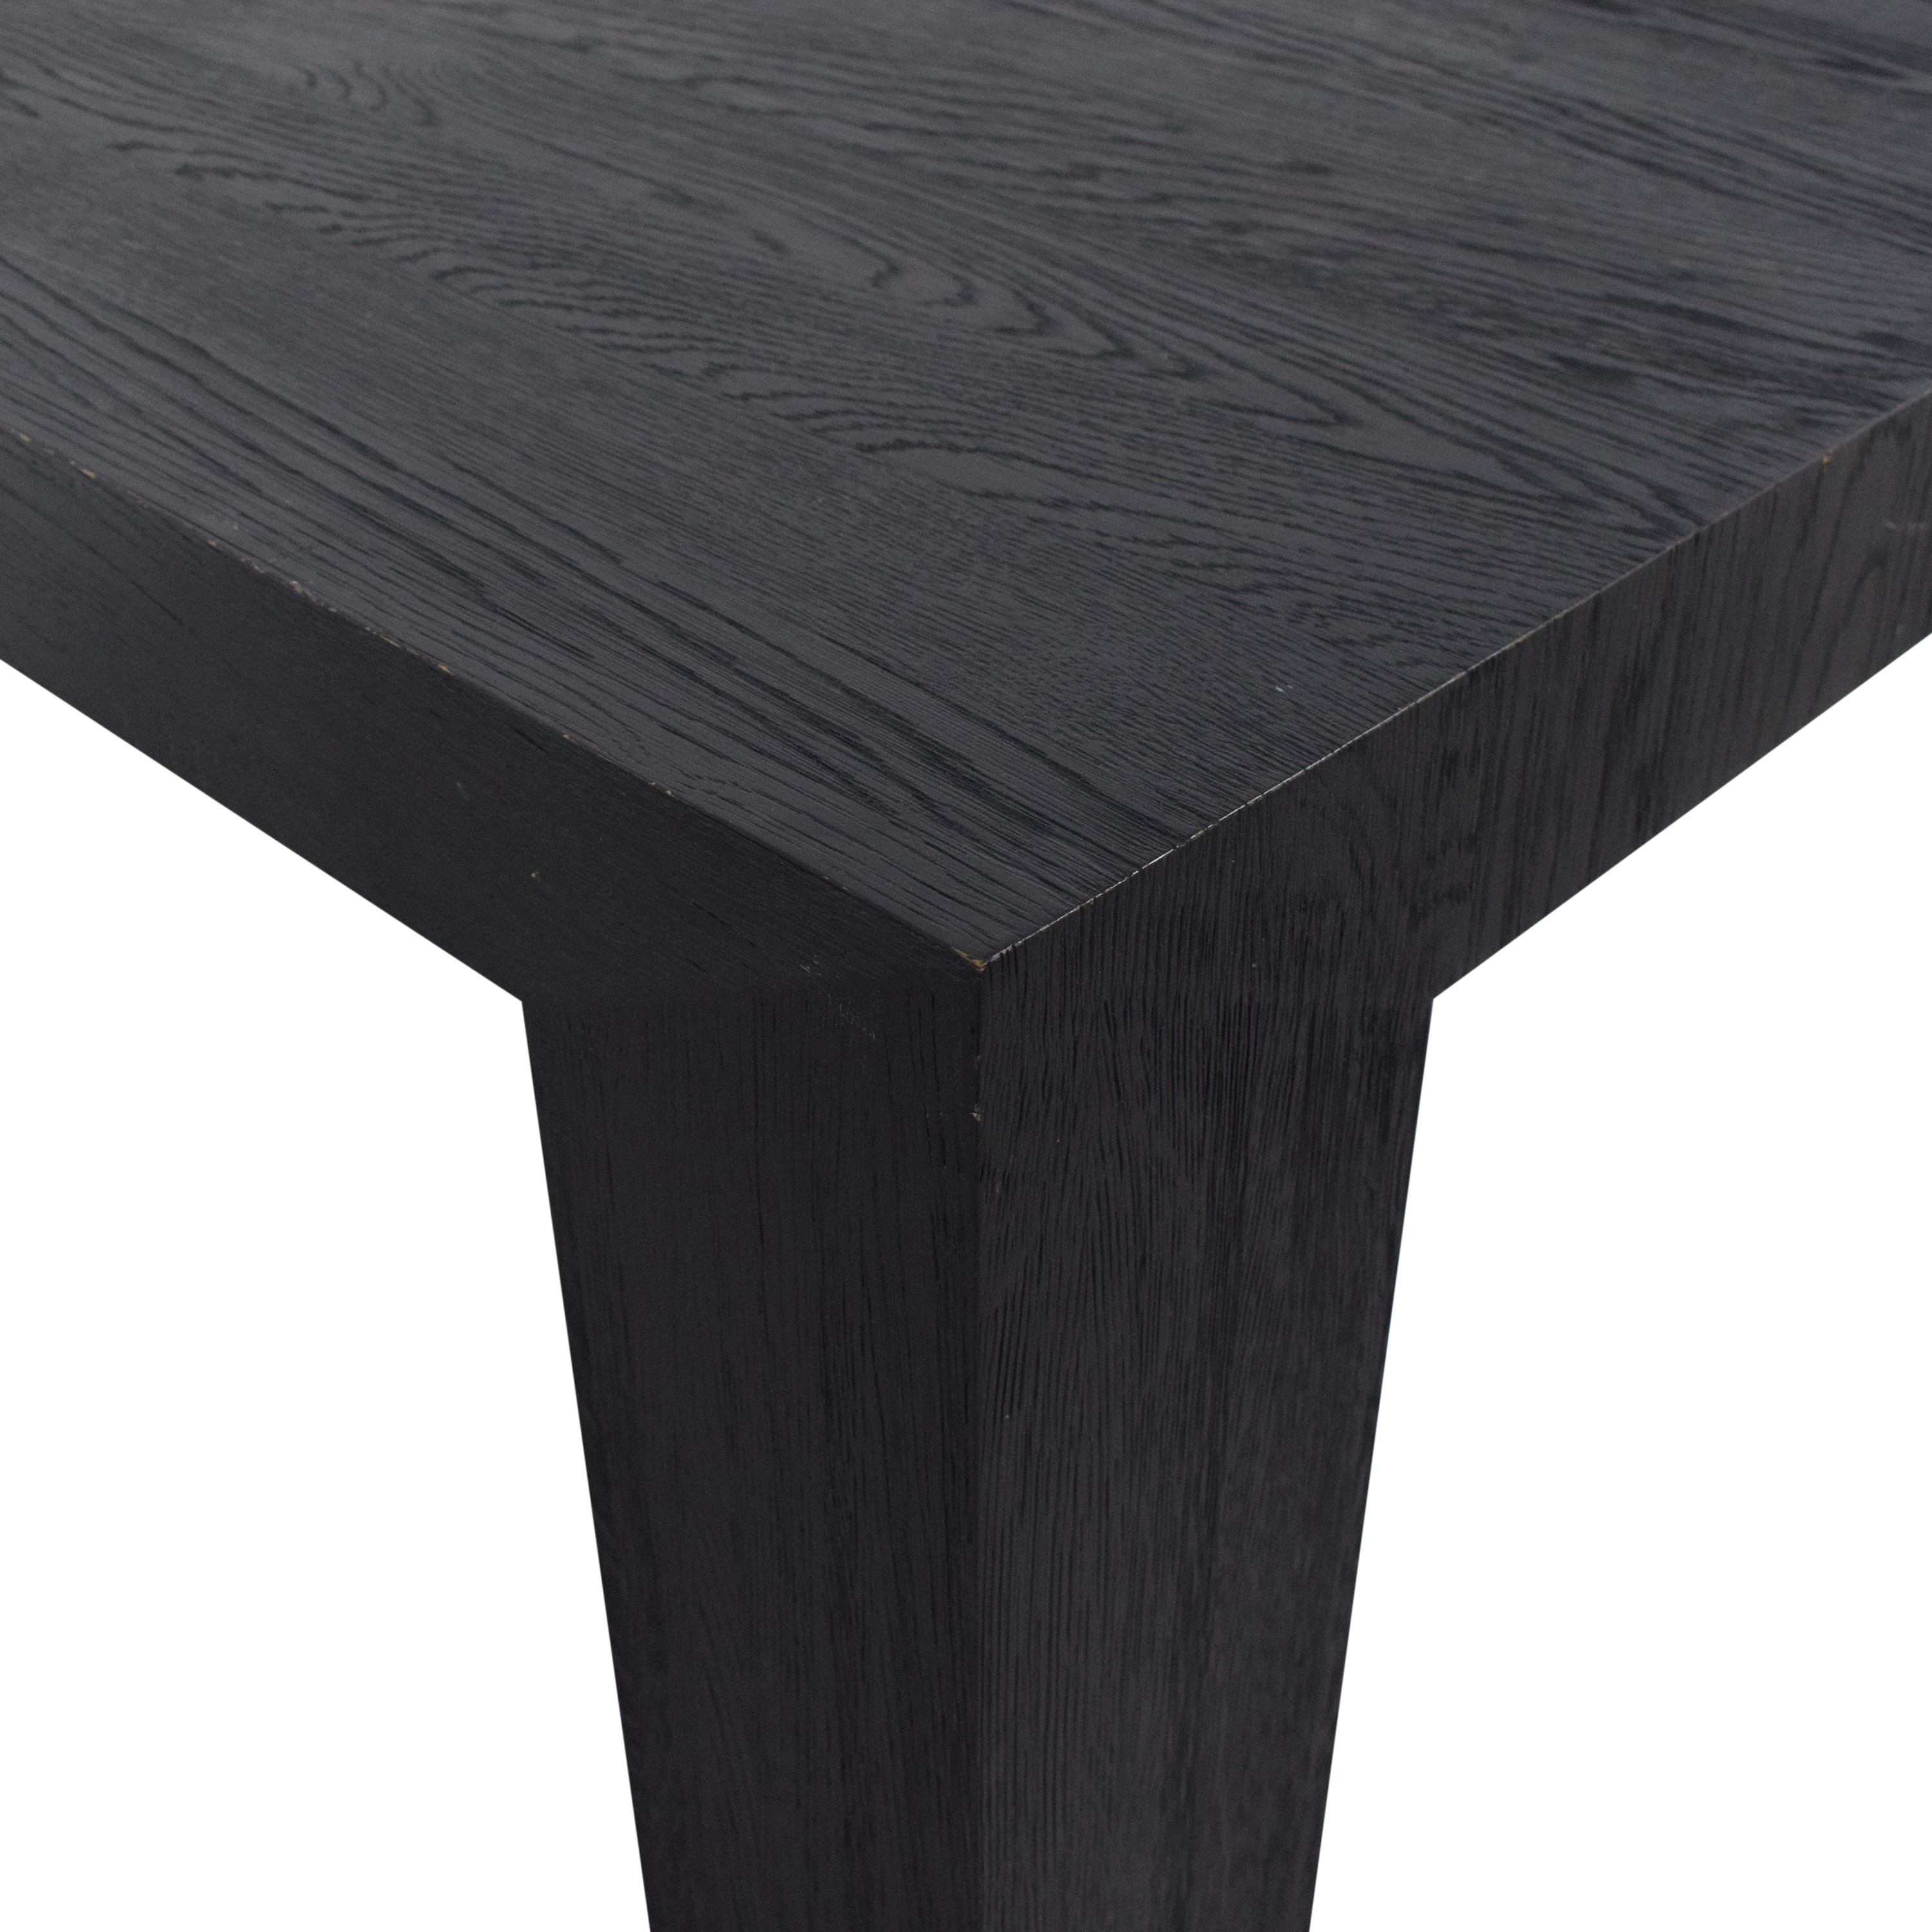 Restoration Hardware Restoration Hardware Machinto Square Dining Table price